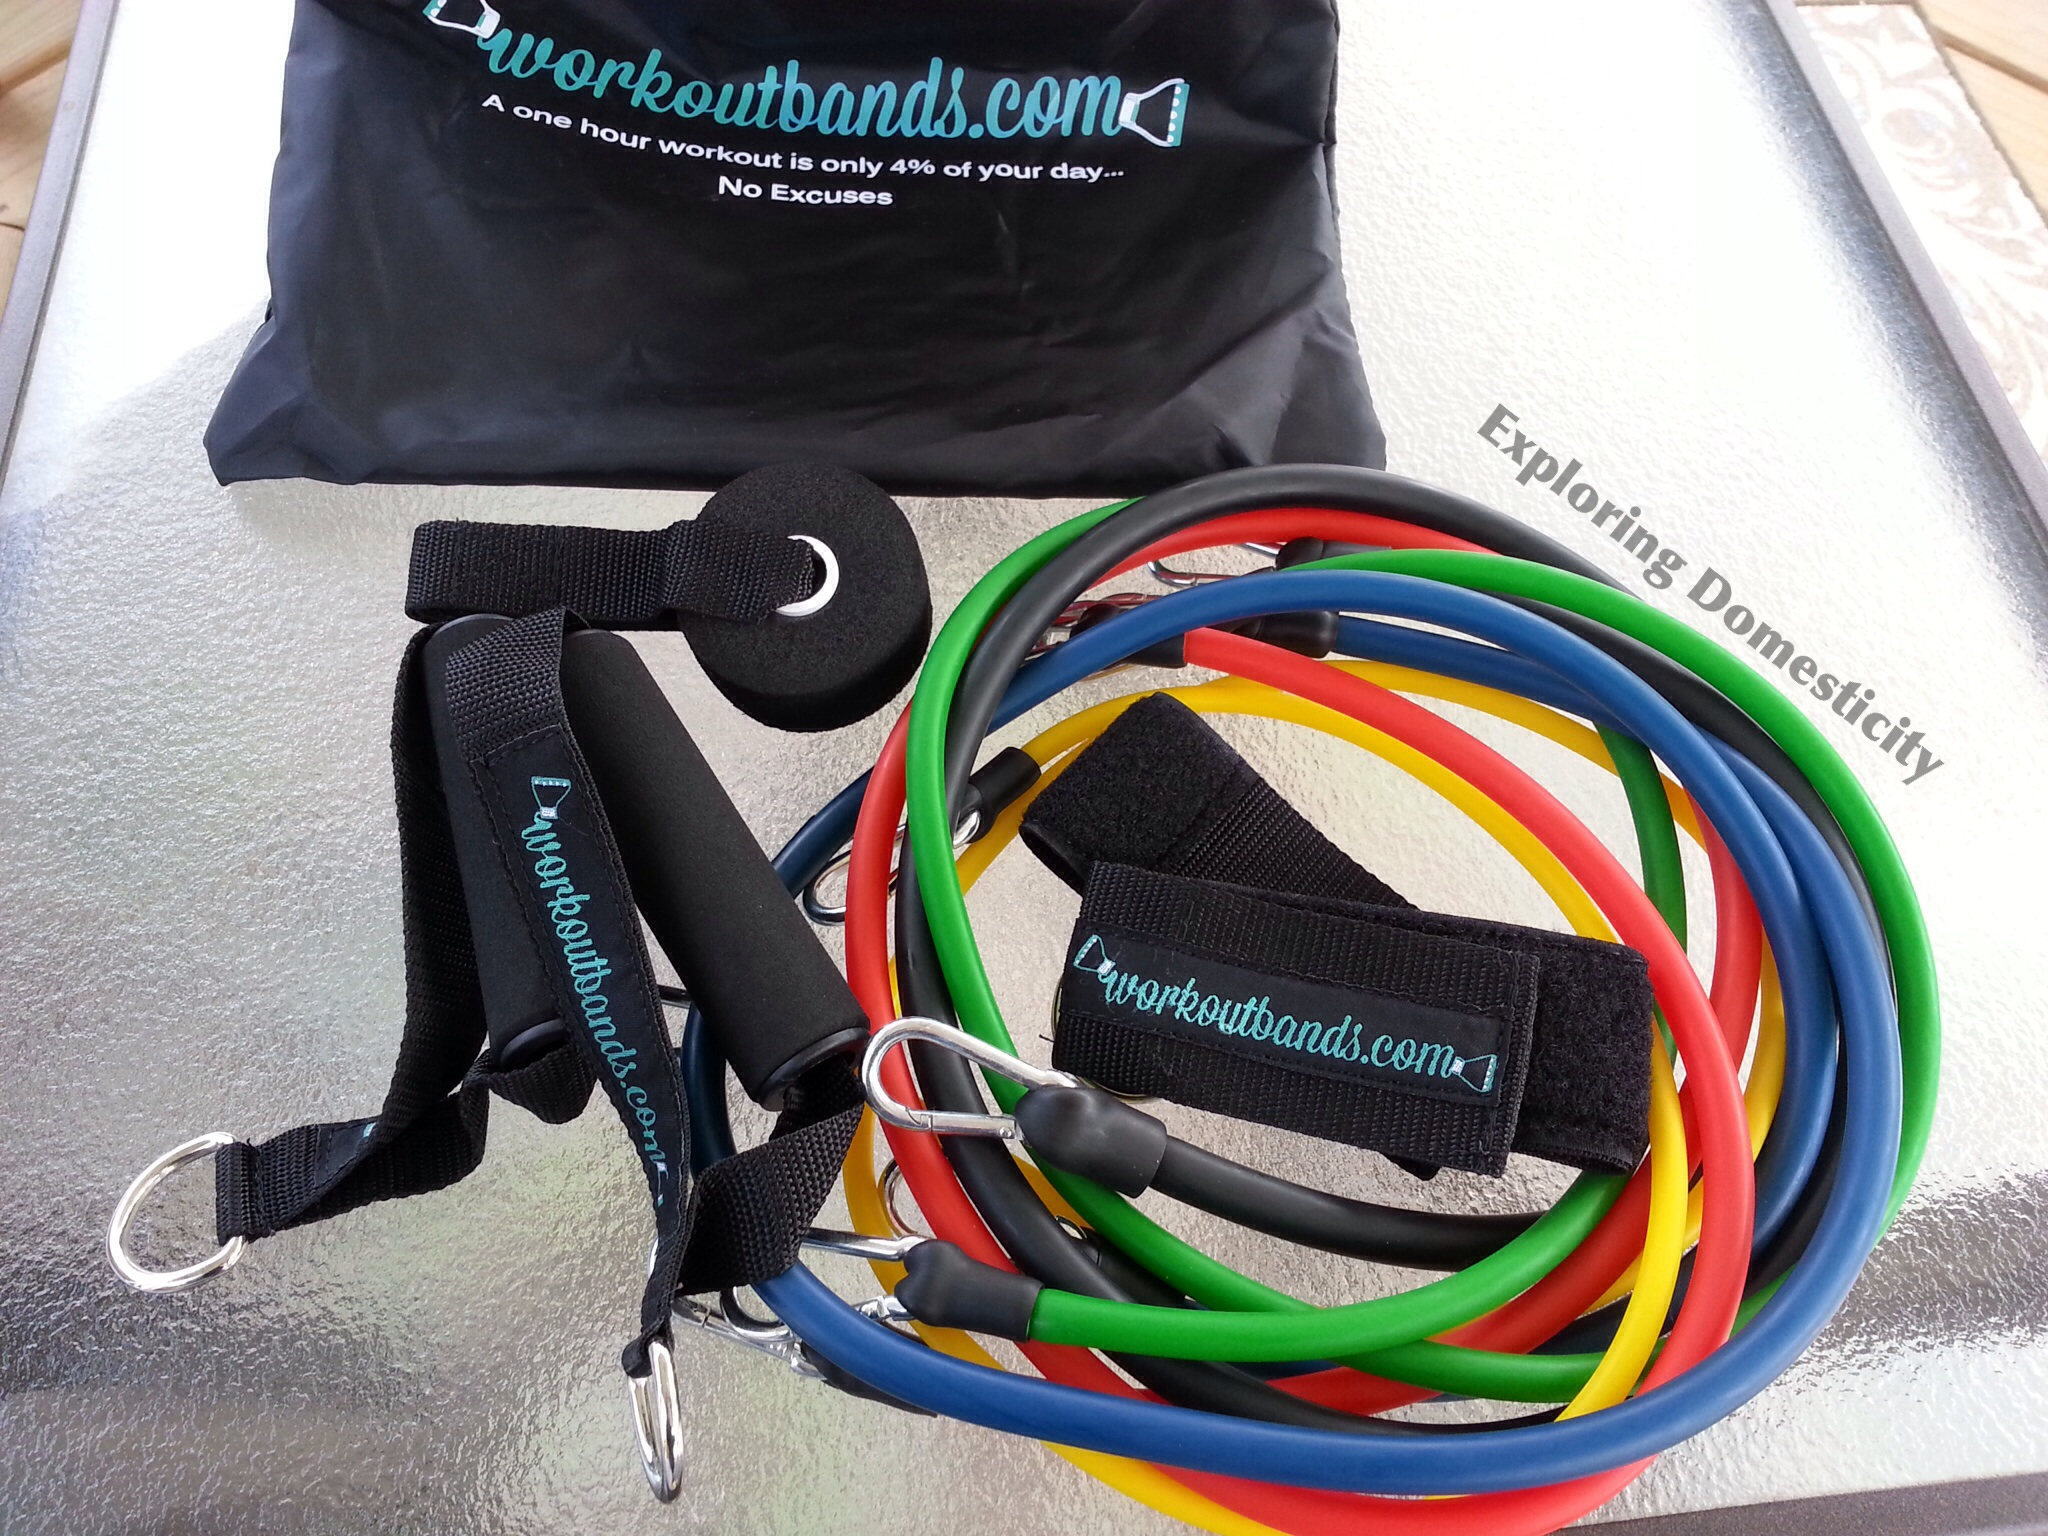 Best workouts and equipment for summer travel - resistance bands